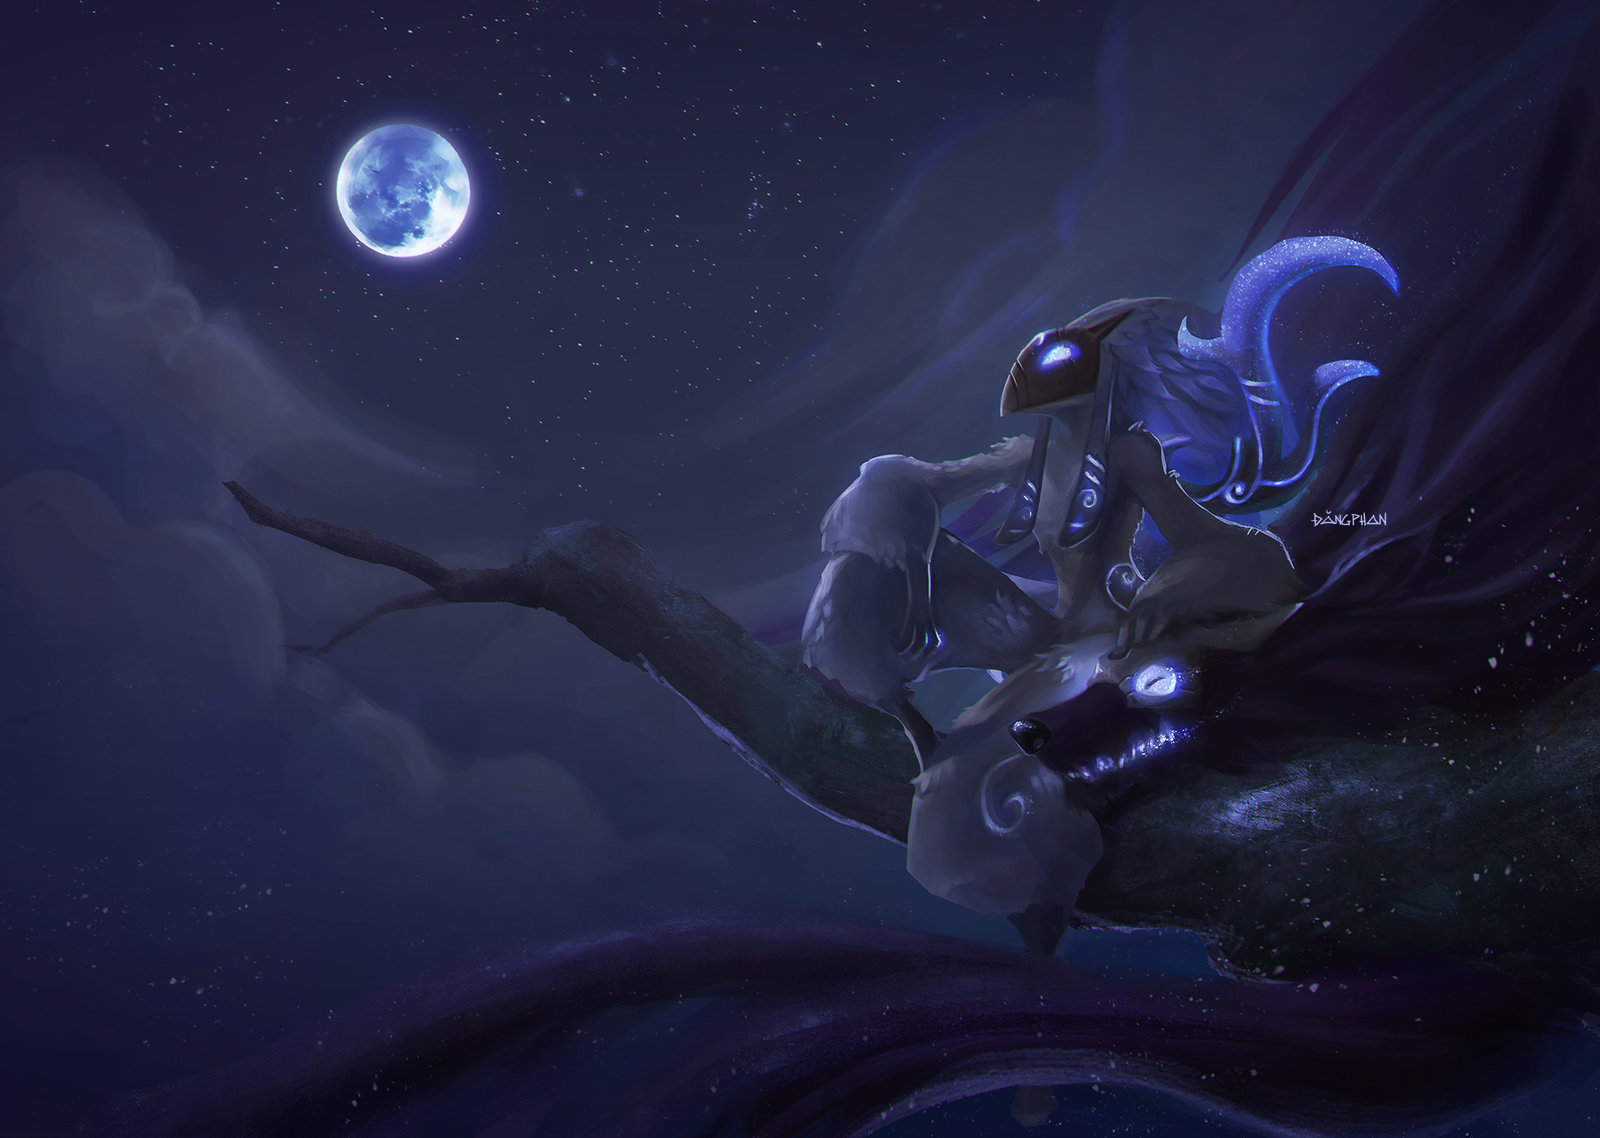 Kindred Minimalist Wallpaper League Of Legends By: Kindred Community Creations